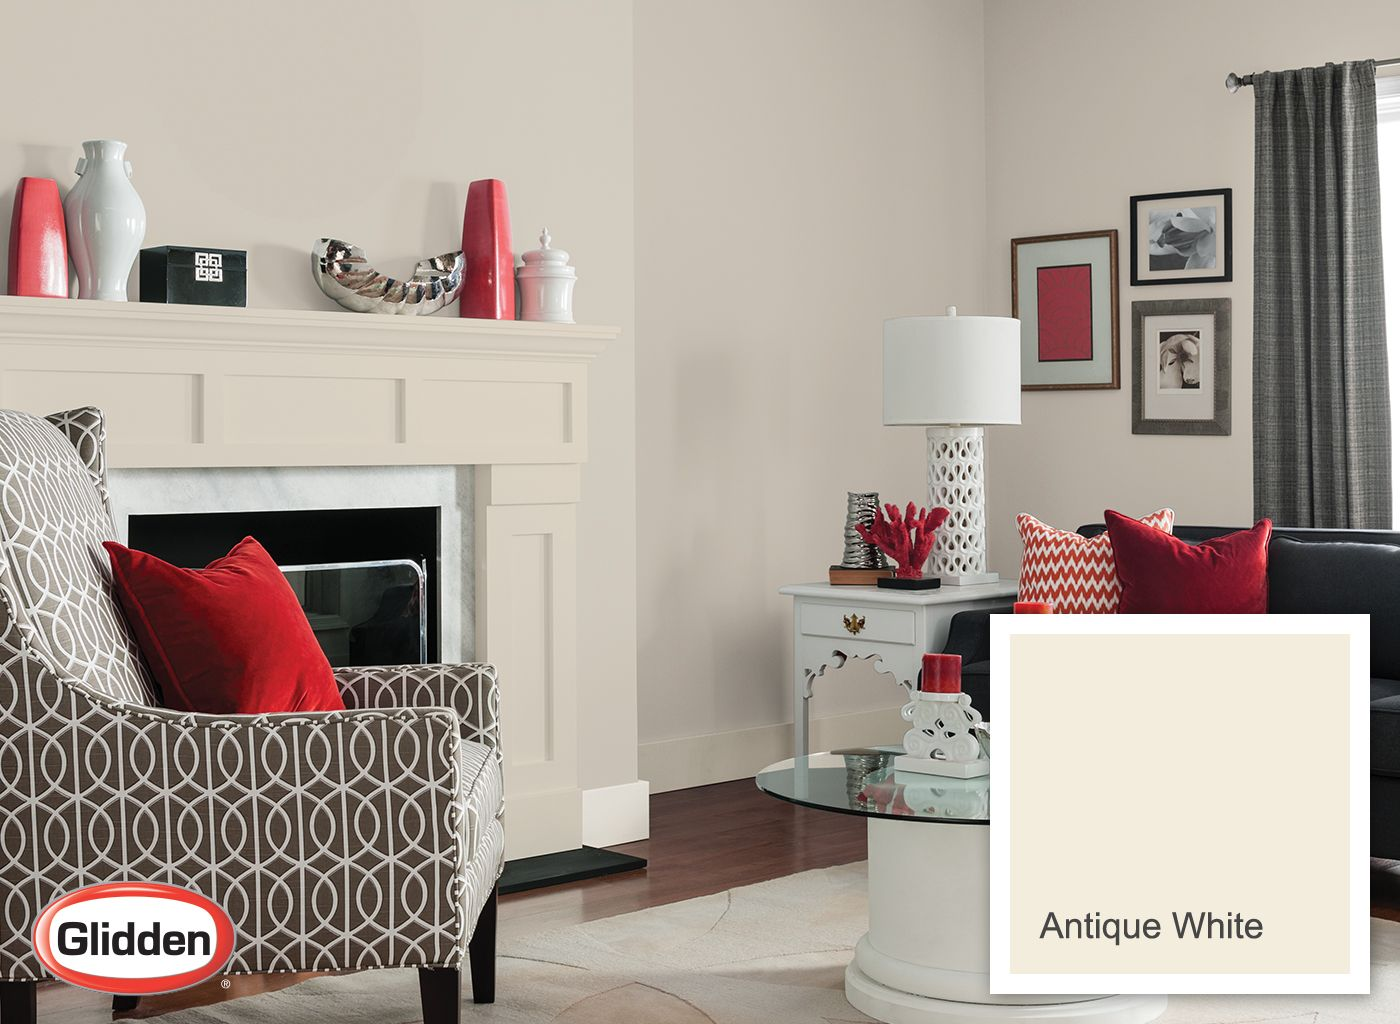 Best Antique White Paint Color Yahoo Image Search Results White Living Room Decor Paint Colors 400 x 300